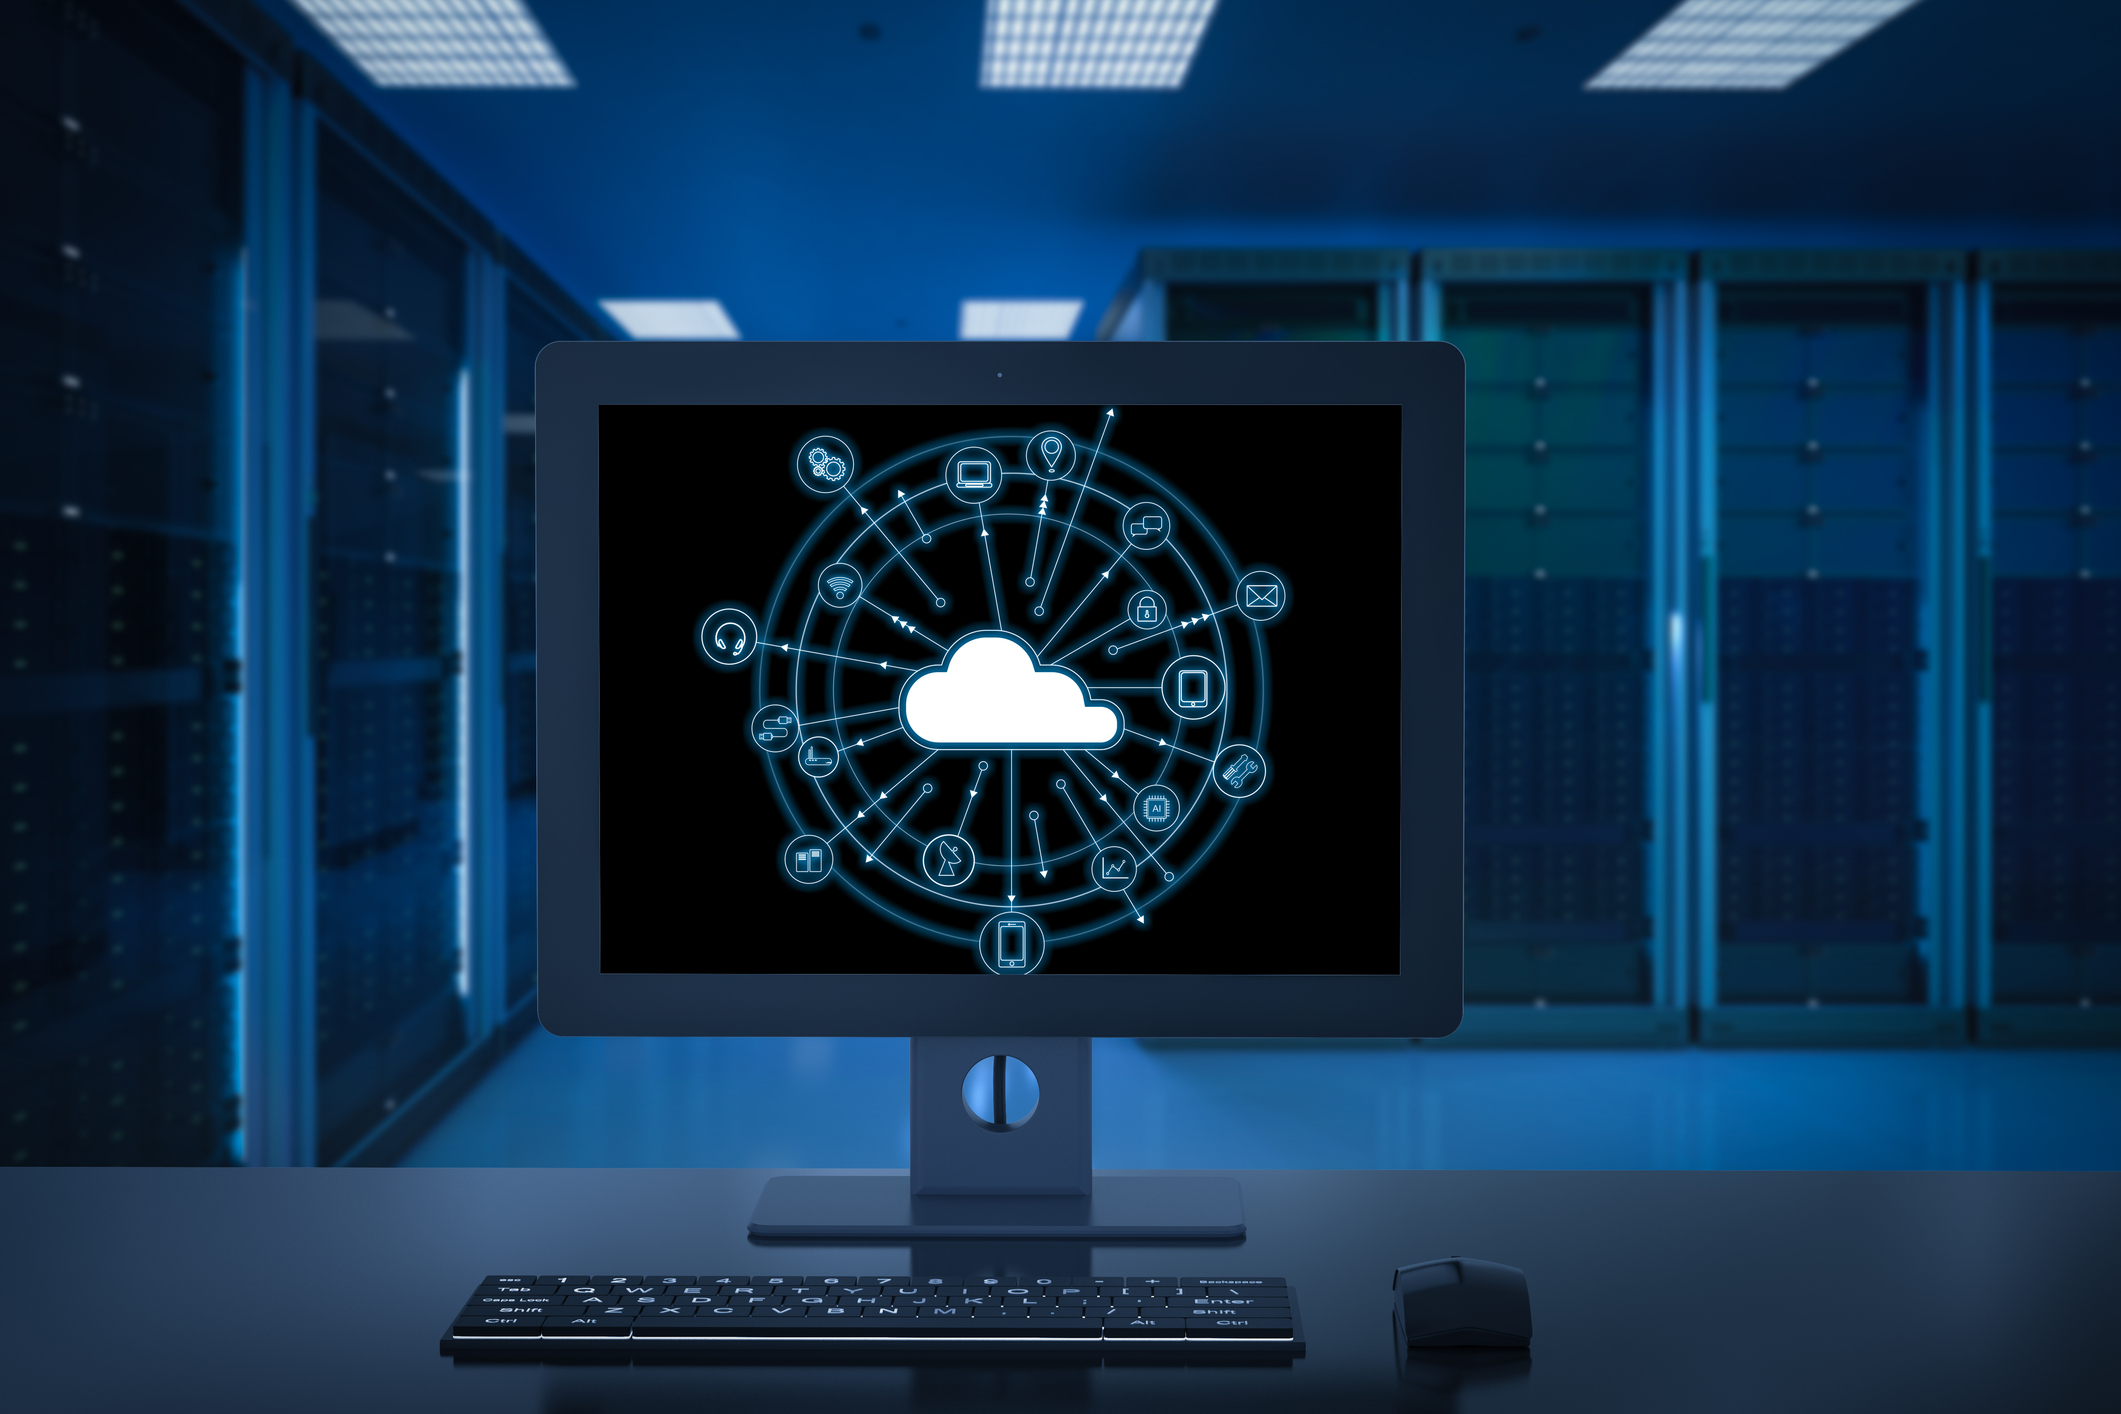 At least a part of your business will be done in the cloud sooner rather than later.